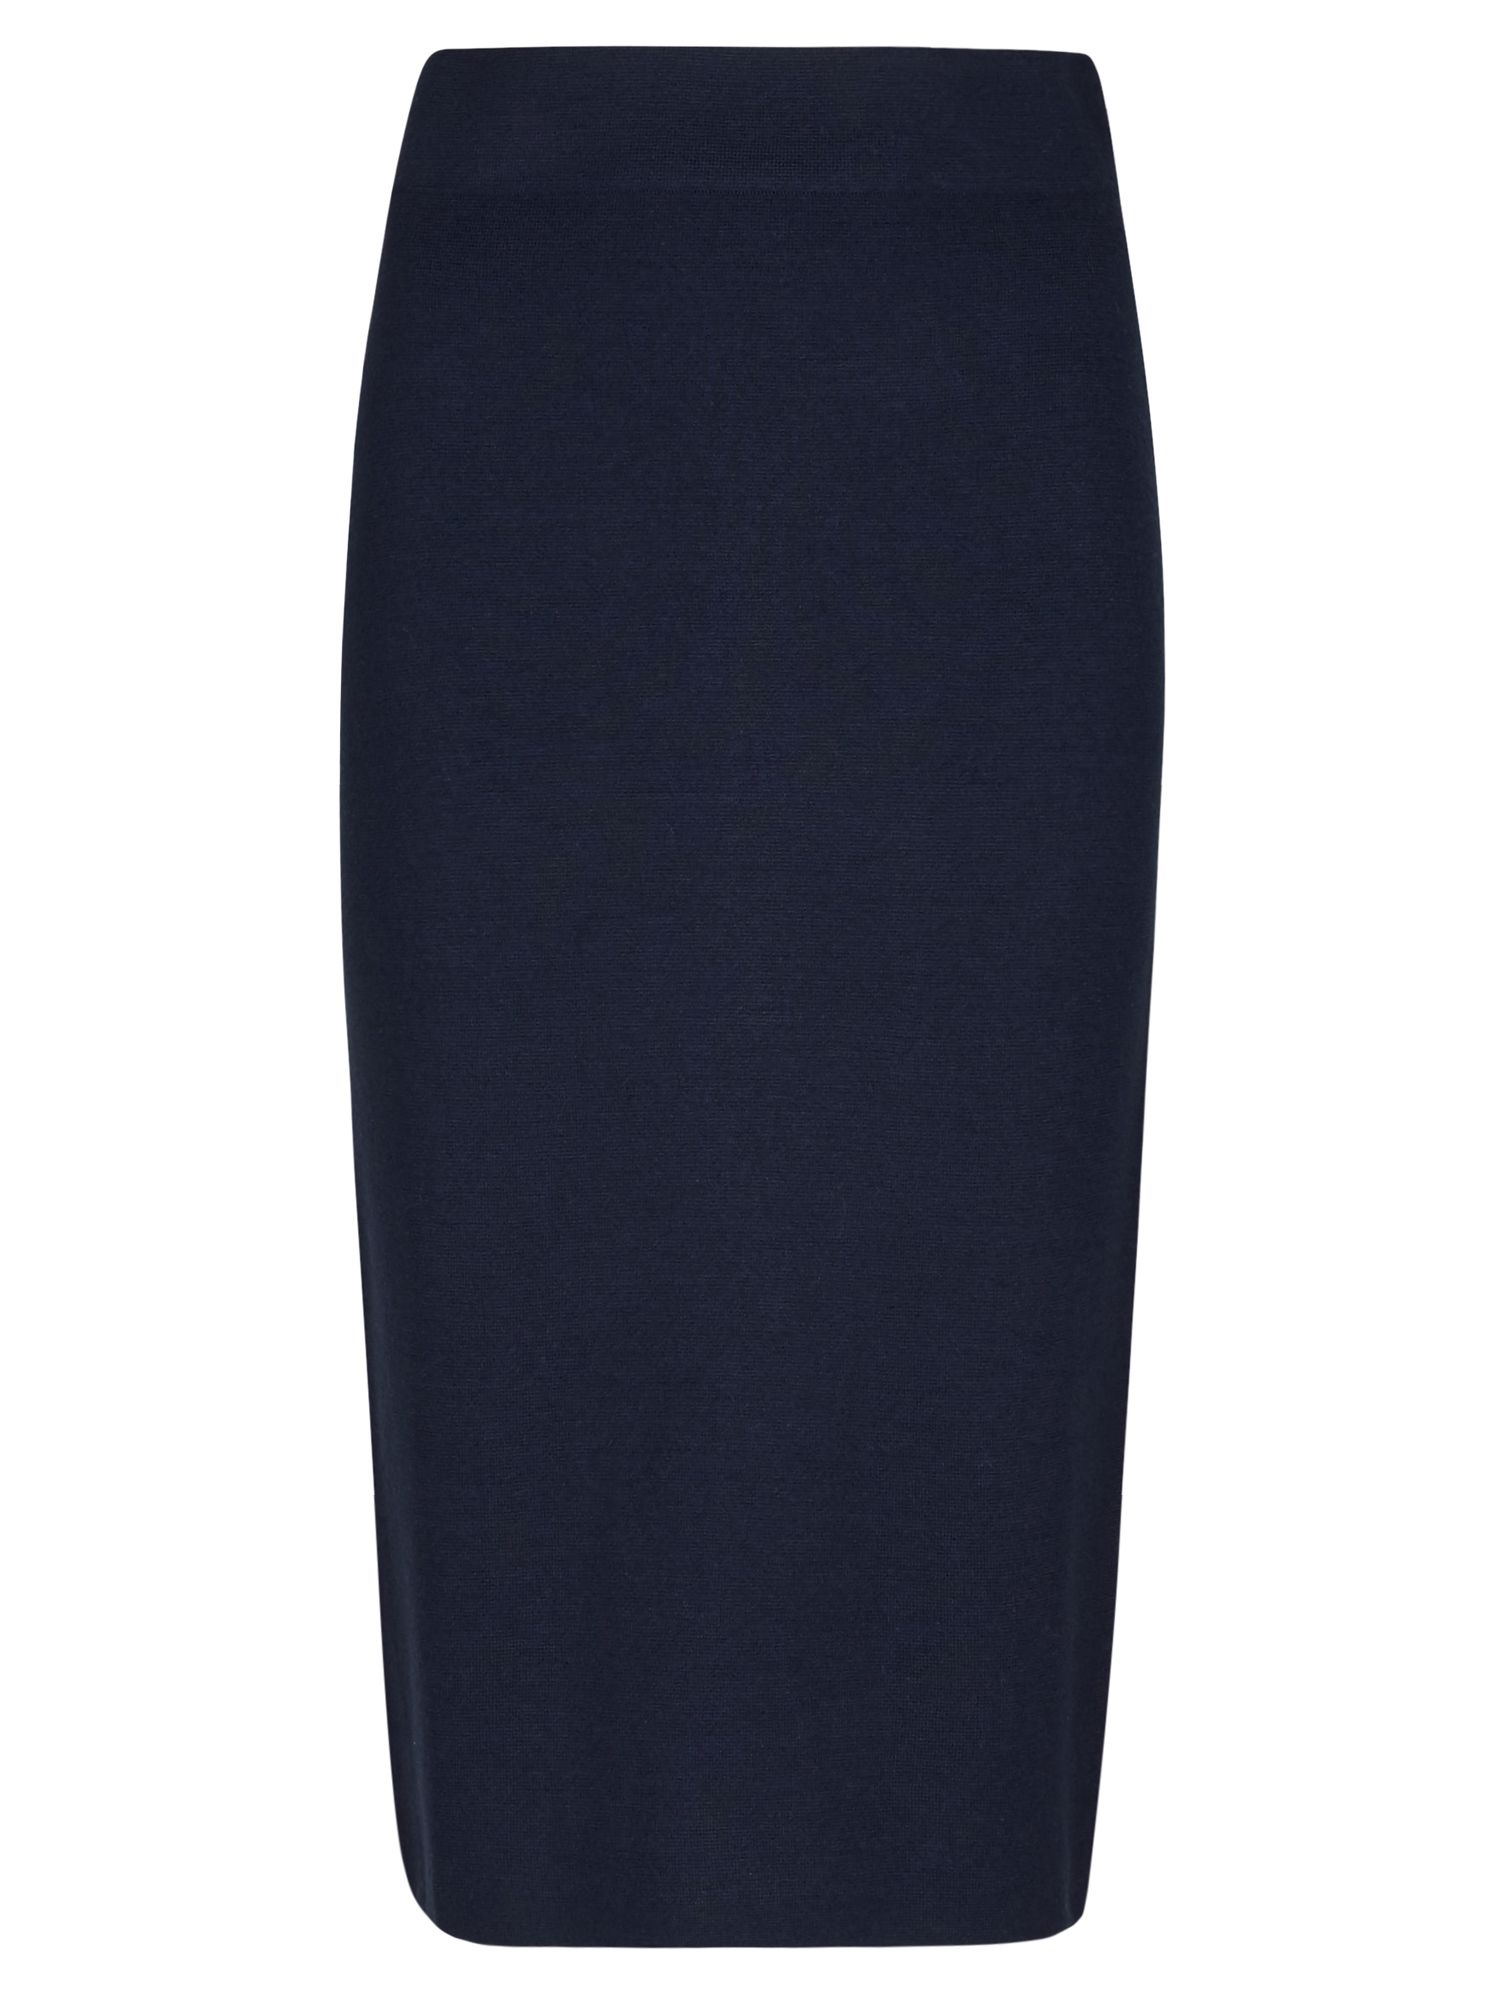 Winser London Milano Wool Skirt, Blue